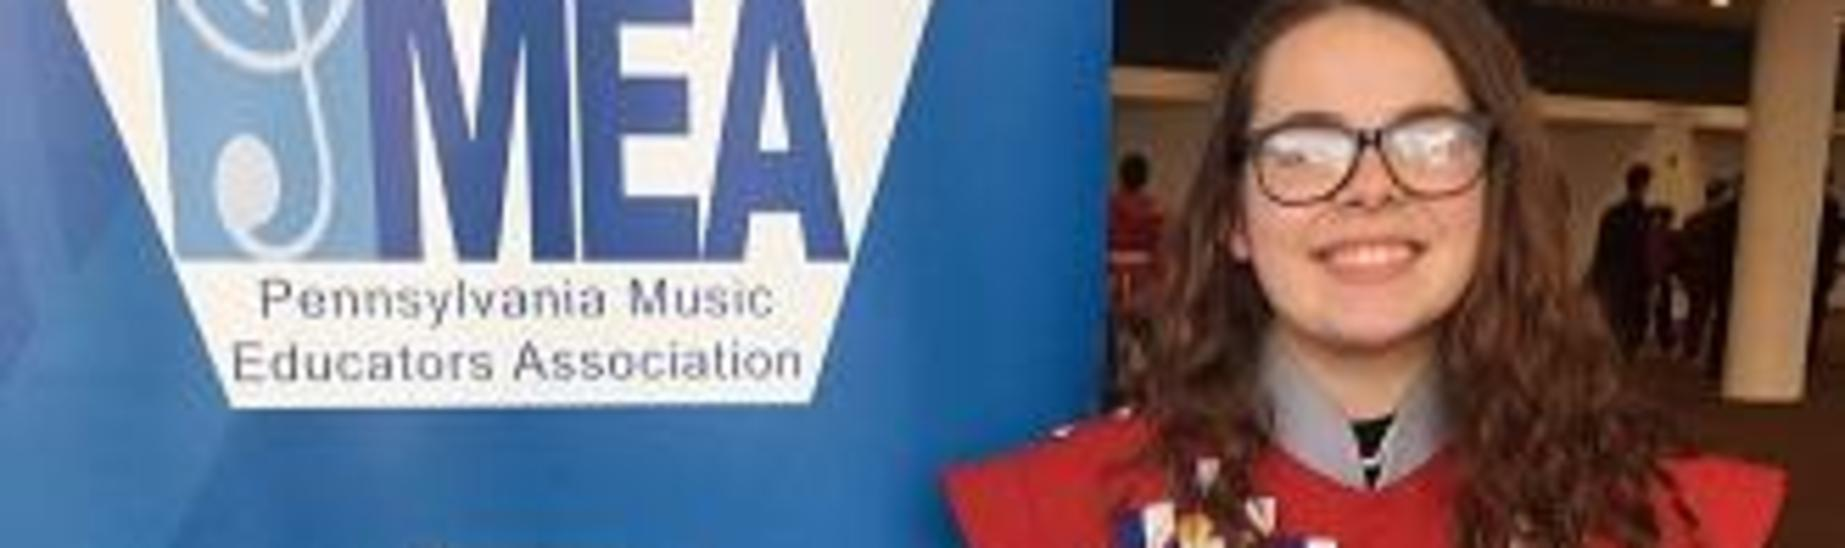 Katie Ponder with the opportunity to participate in PMEA All State Band.